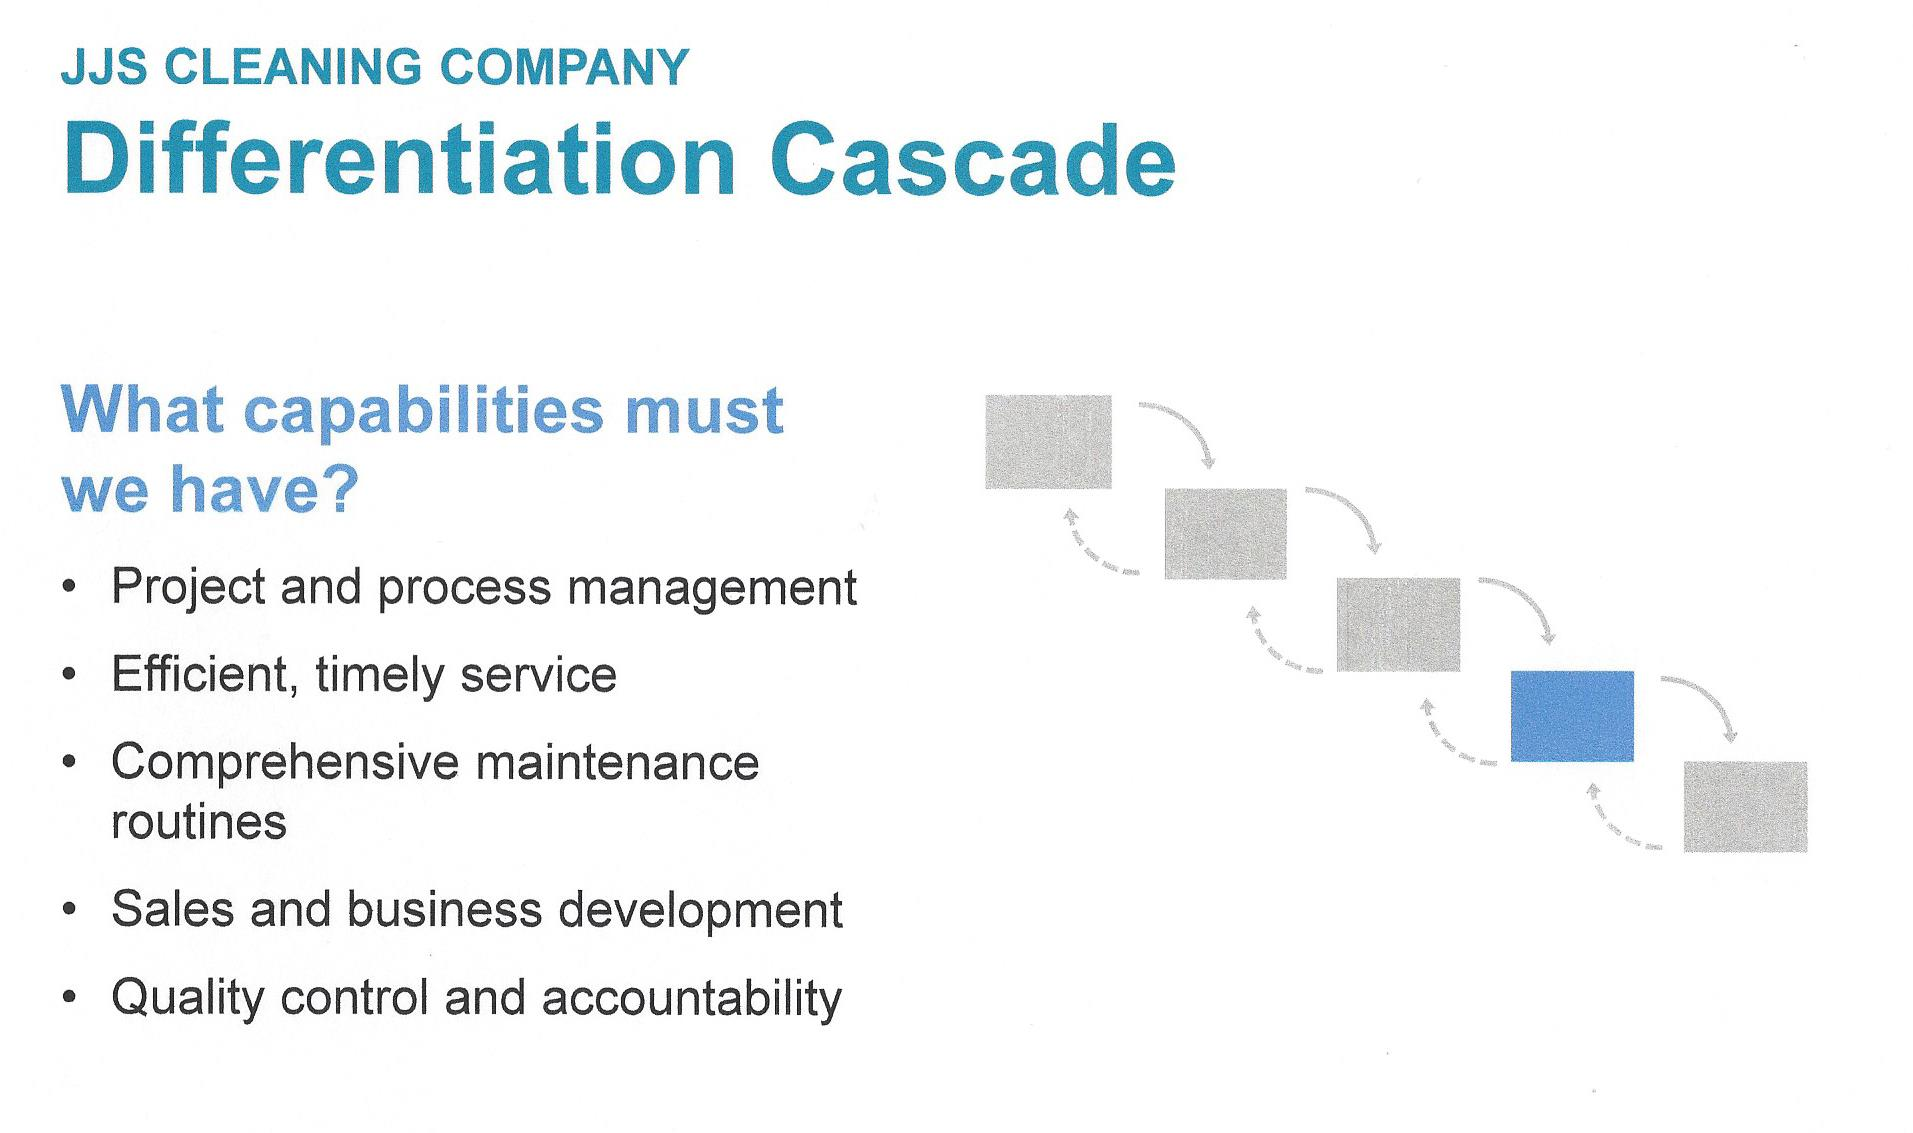 Play to Win - Differentiation Cascade - Capabilities